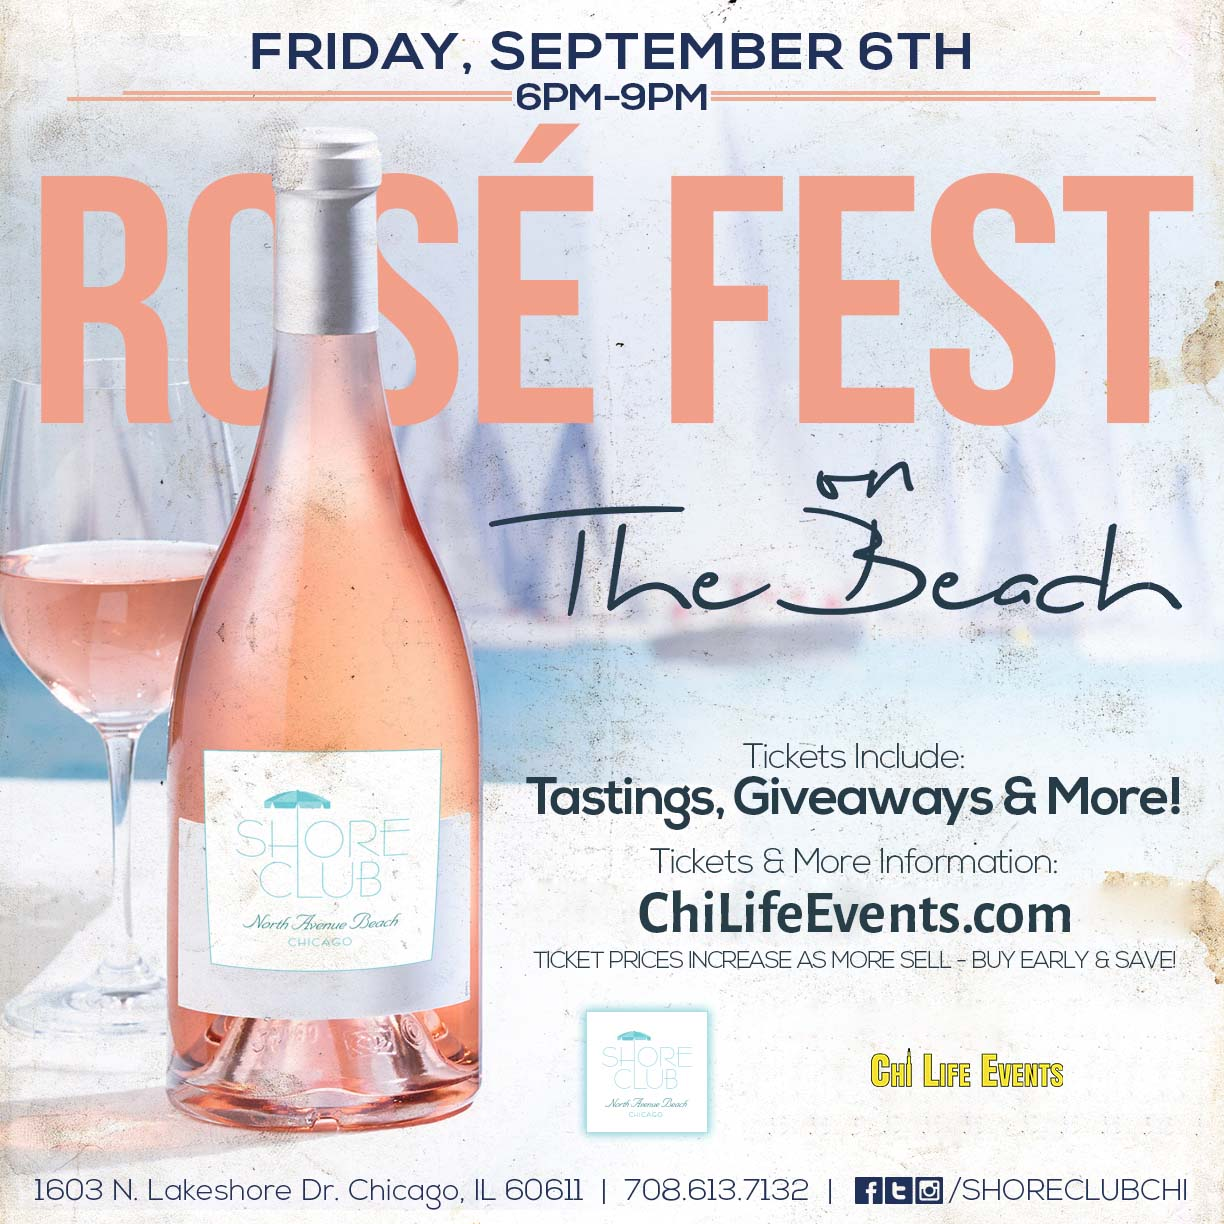 Rosé Fest on the Beach Party - Tickets include rosé tastings, giveaways & MORE! We will have a variety of different rosé wines available for sampling!